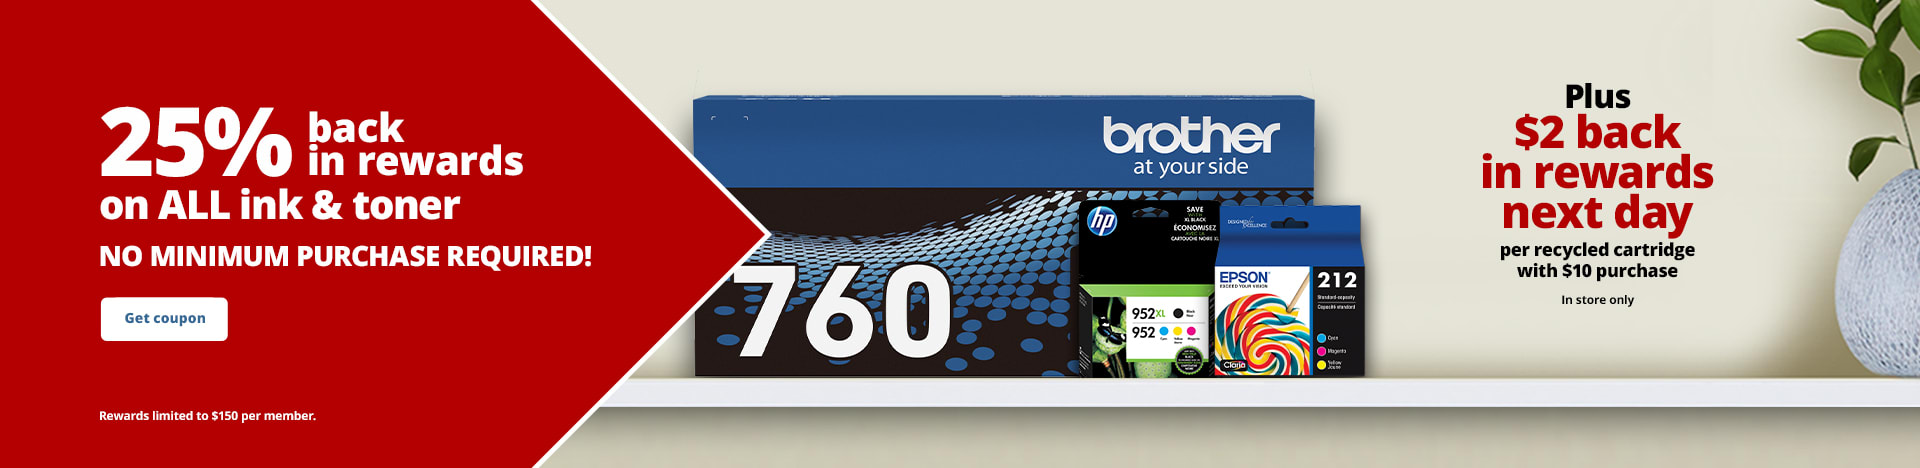 25% back in rewards on ALL ink & toner NO MINIMUM PURCHASE REQUIRED